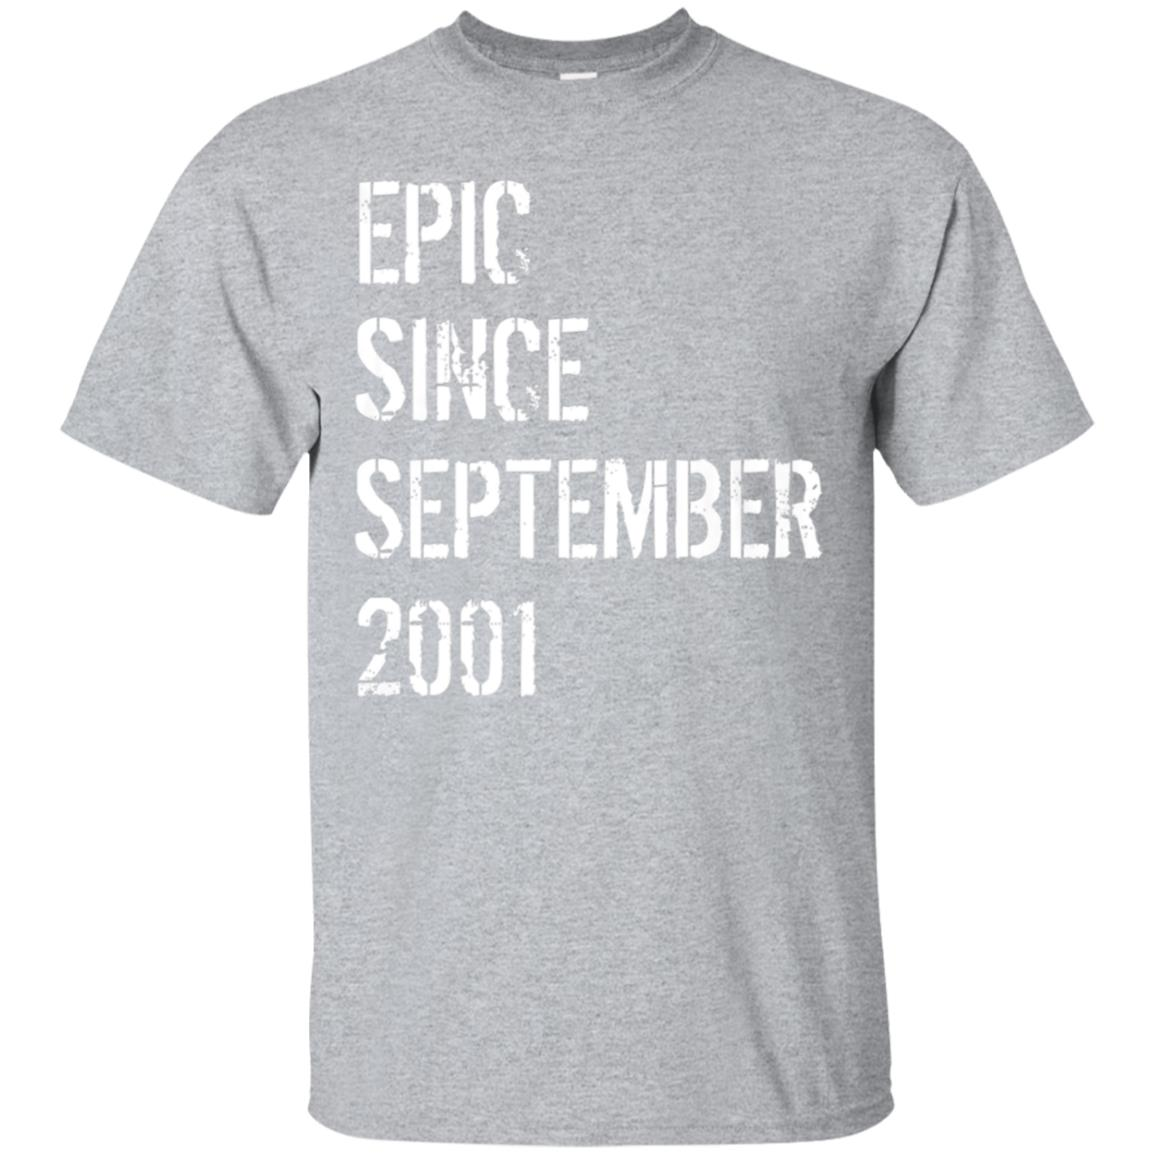 Born In September 2001 Birthday Gift T-Shirt 17 Year Old 99promocode